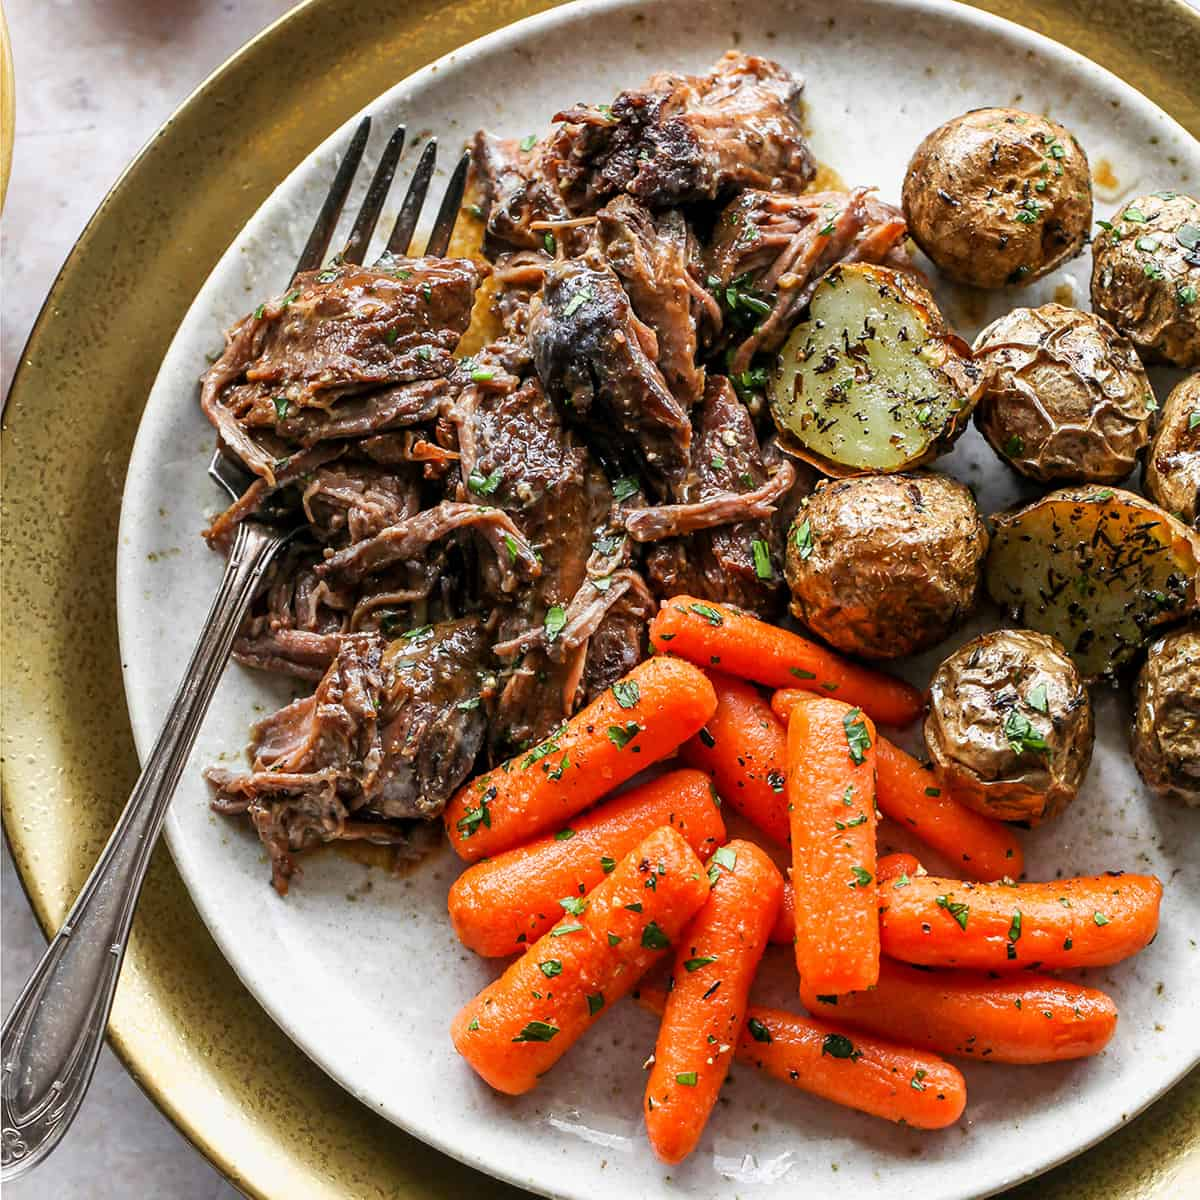 Slow Cooker Pot Roast on a plate with carrots and potatoes